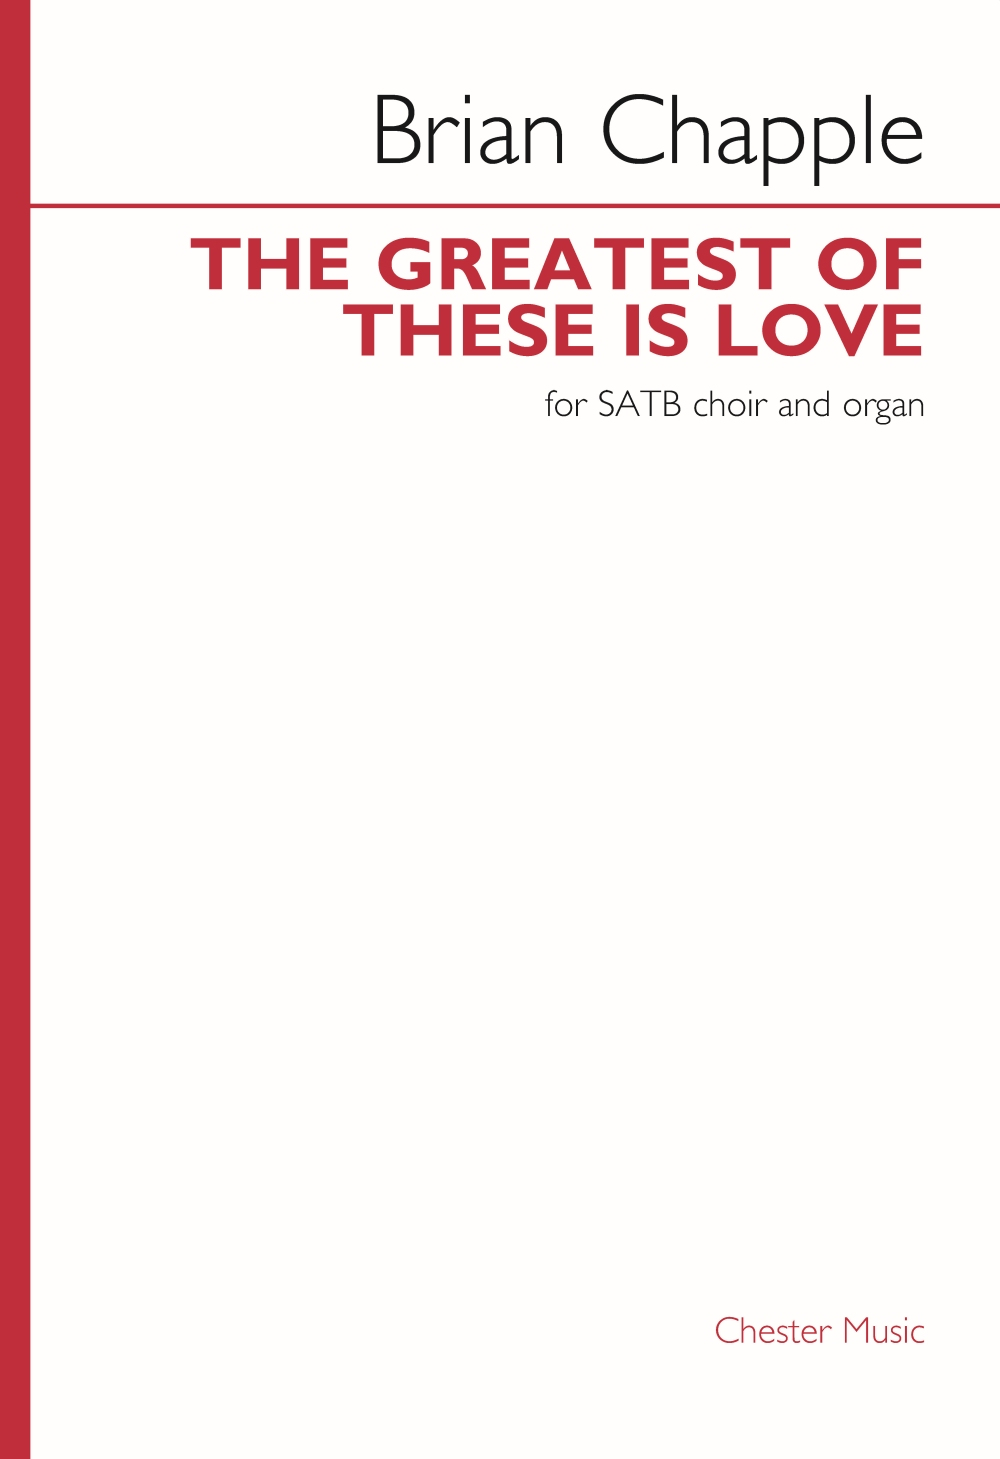 Brian Chapple: The Greatest of These is Love: Mixed Choir and Piano/Organ: